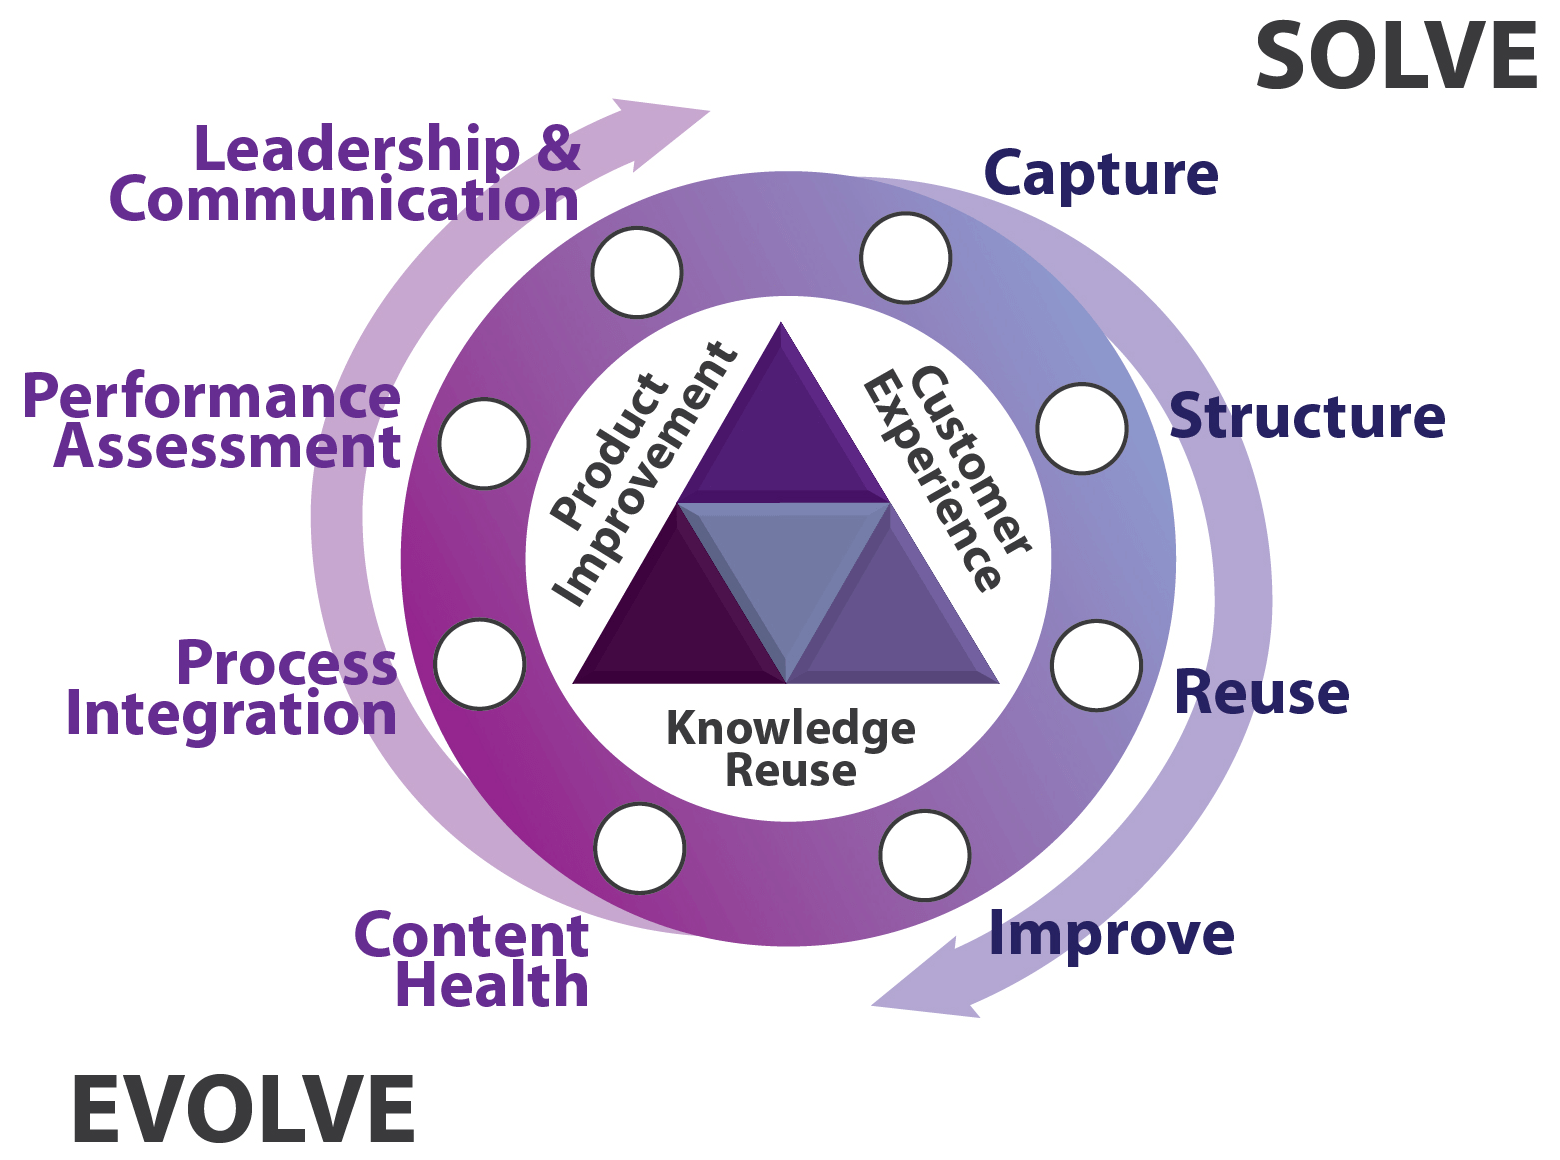 KCS: Solve & Evolve Douple Loop